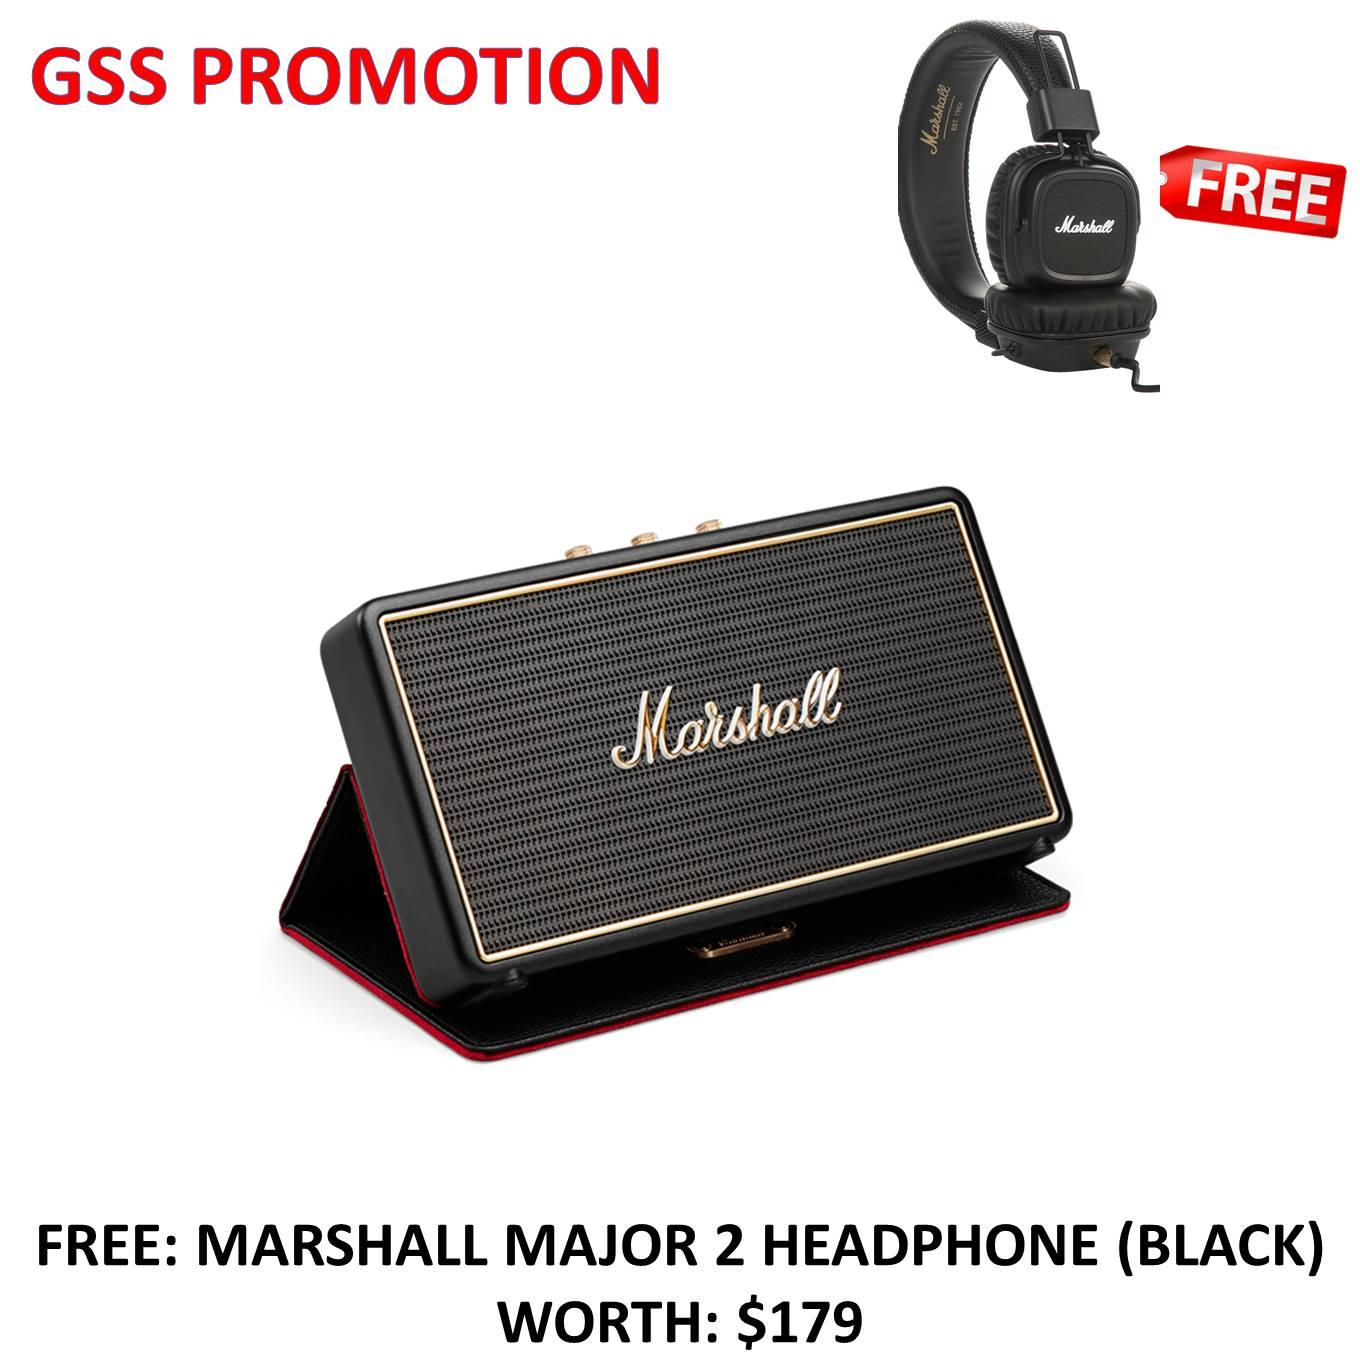 Purchase Marshall Stockwell Portable Bluetooth Speaker With Flipcase Free Major 2 Headphone